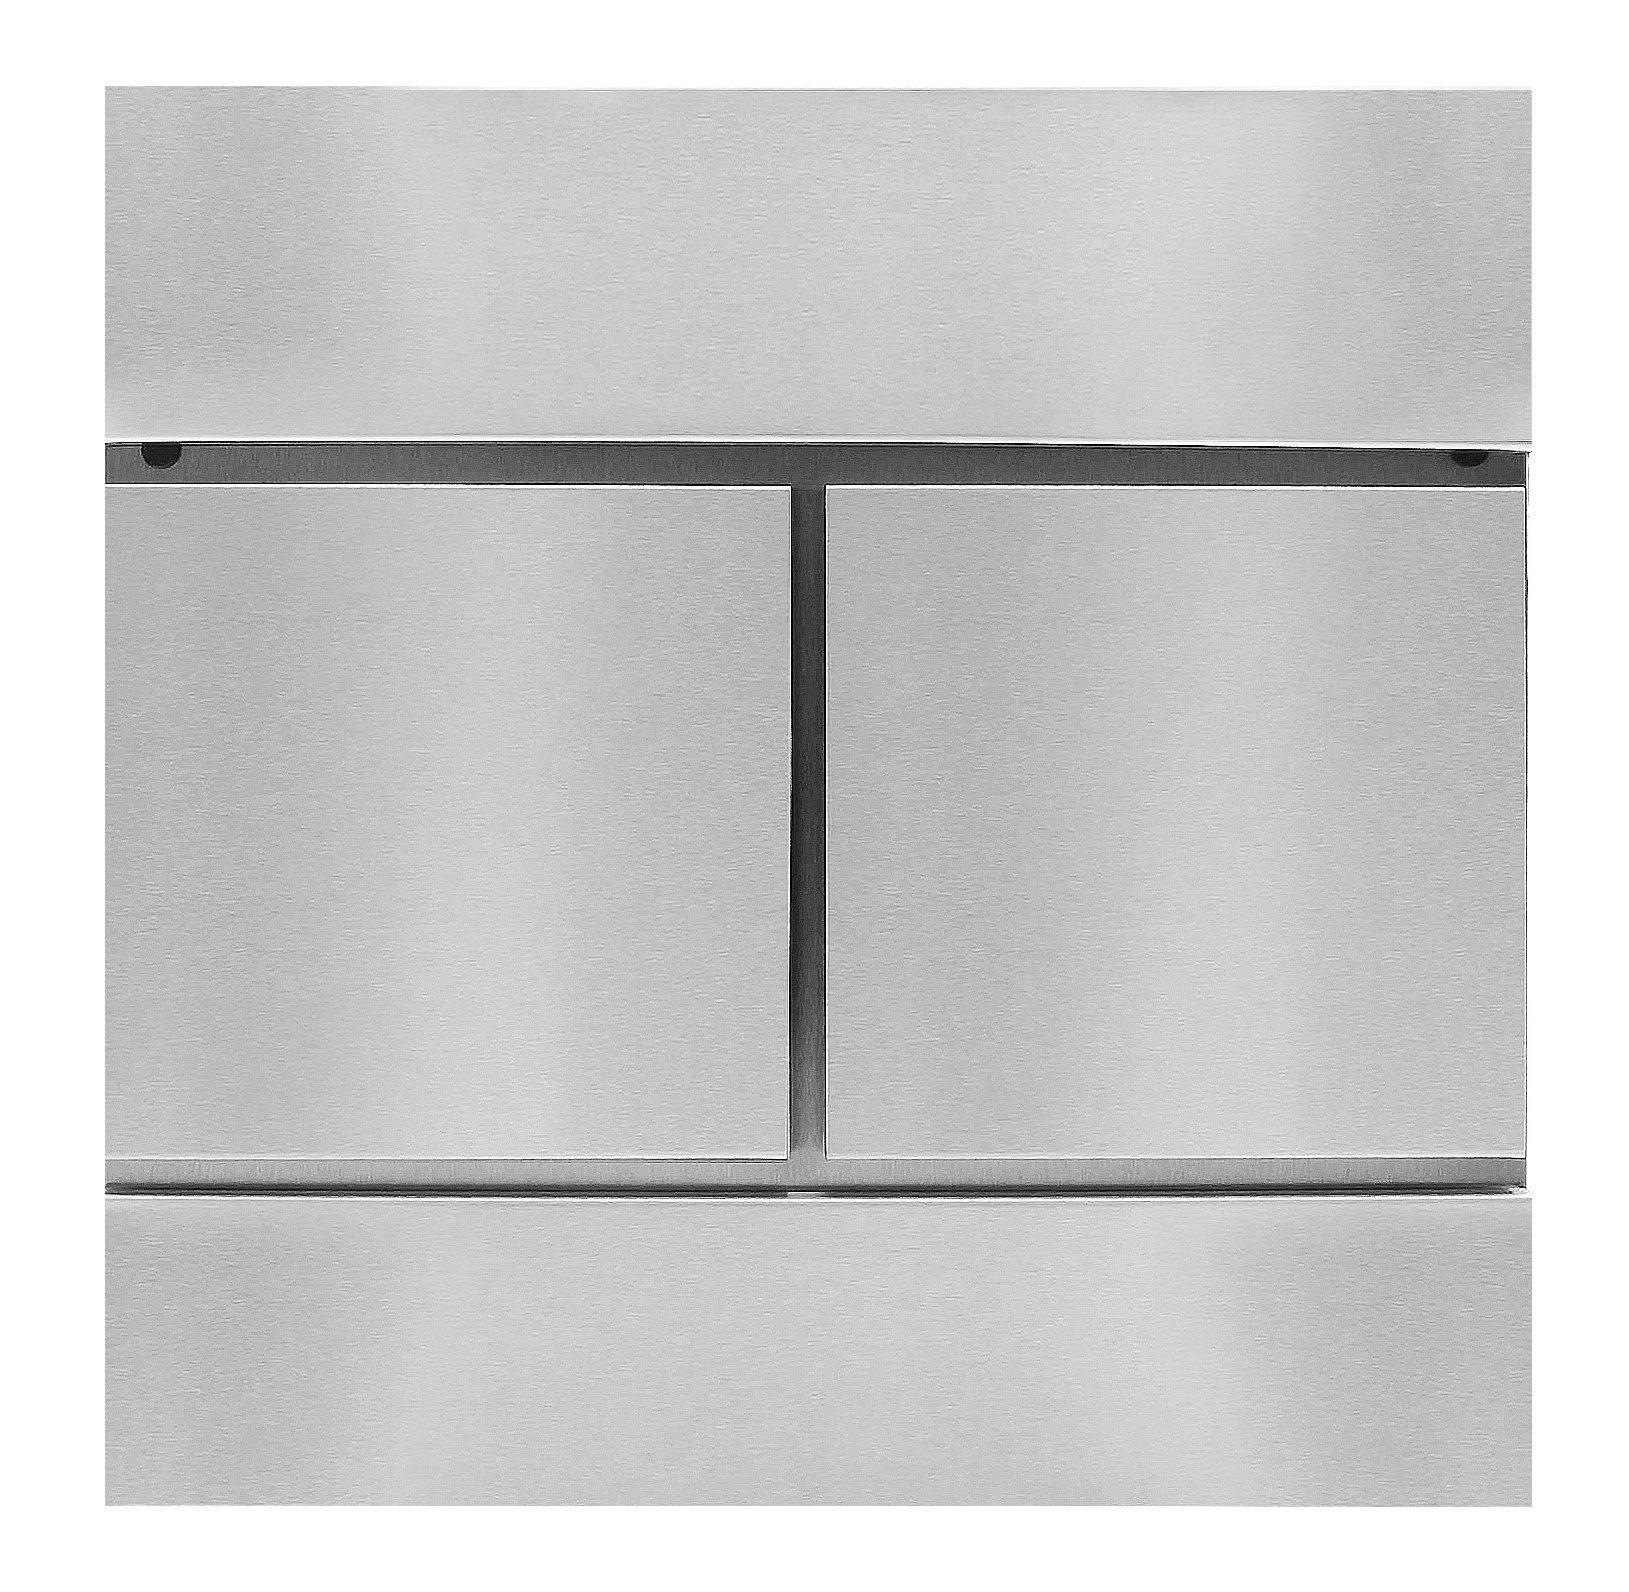 MPB932N AMOYLIMAI New Style Vertical Lockable Mailboxes Brushed Stainless Steel With Newspaper Holder Modern Urban Style - REAL STAINLESS STEEL 0.8MM THICK